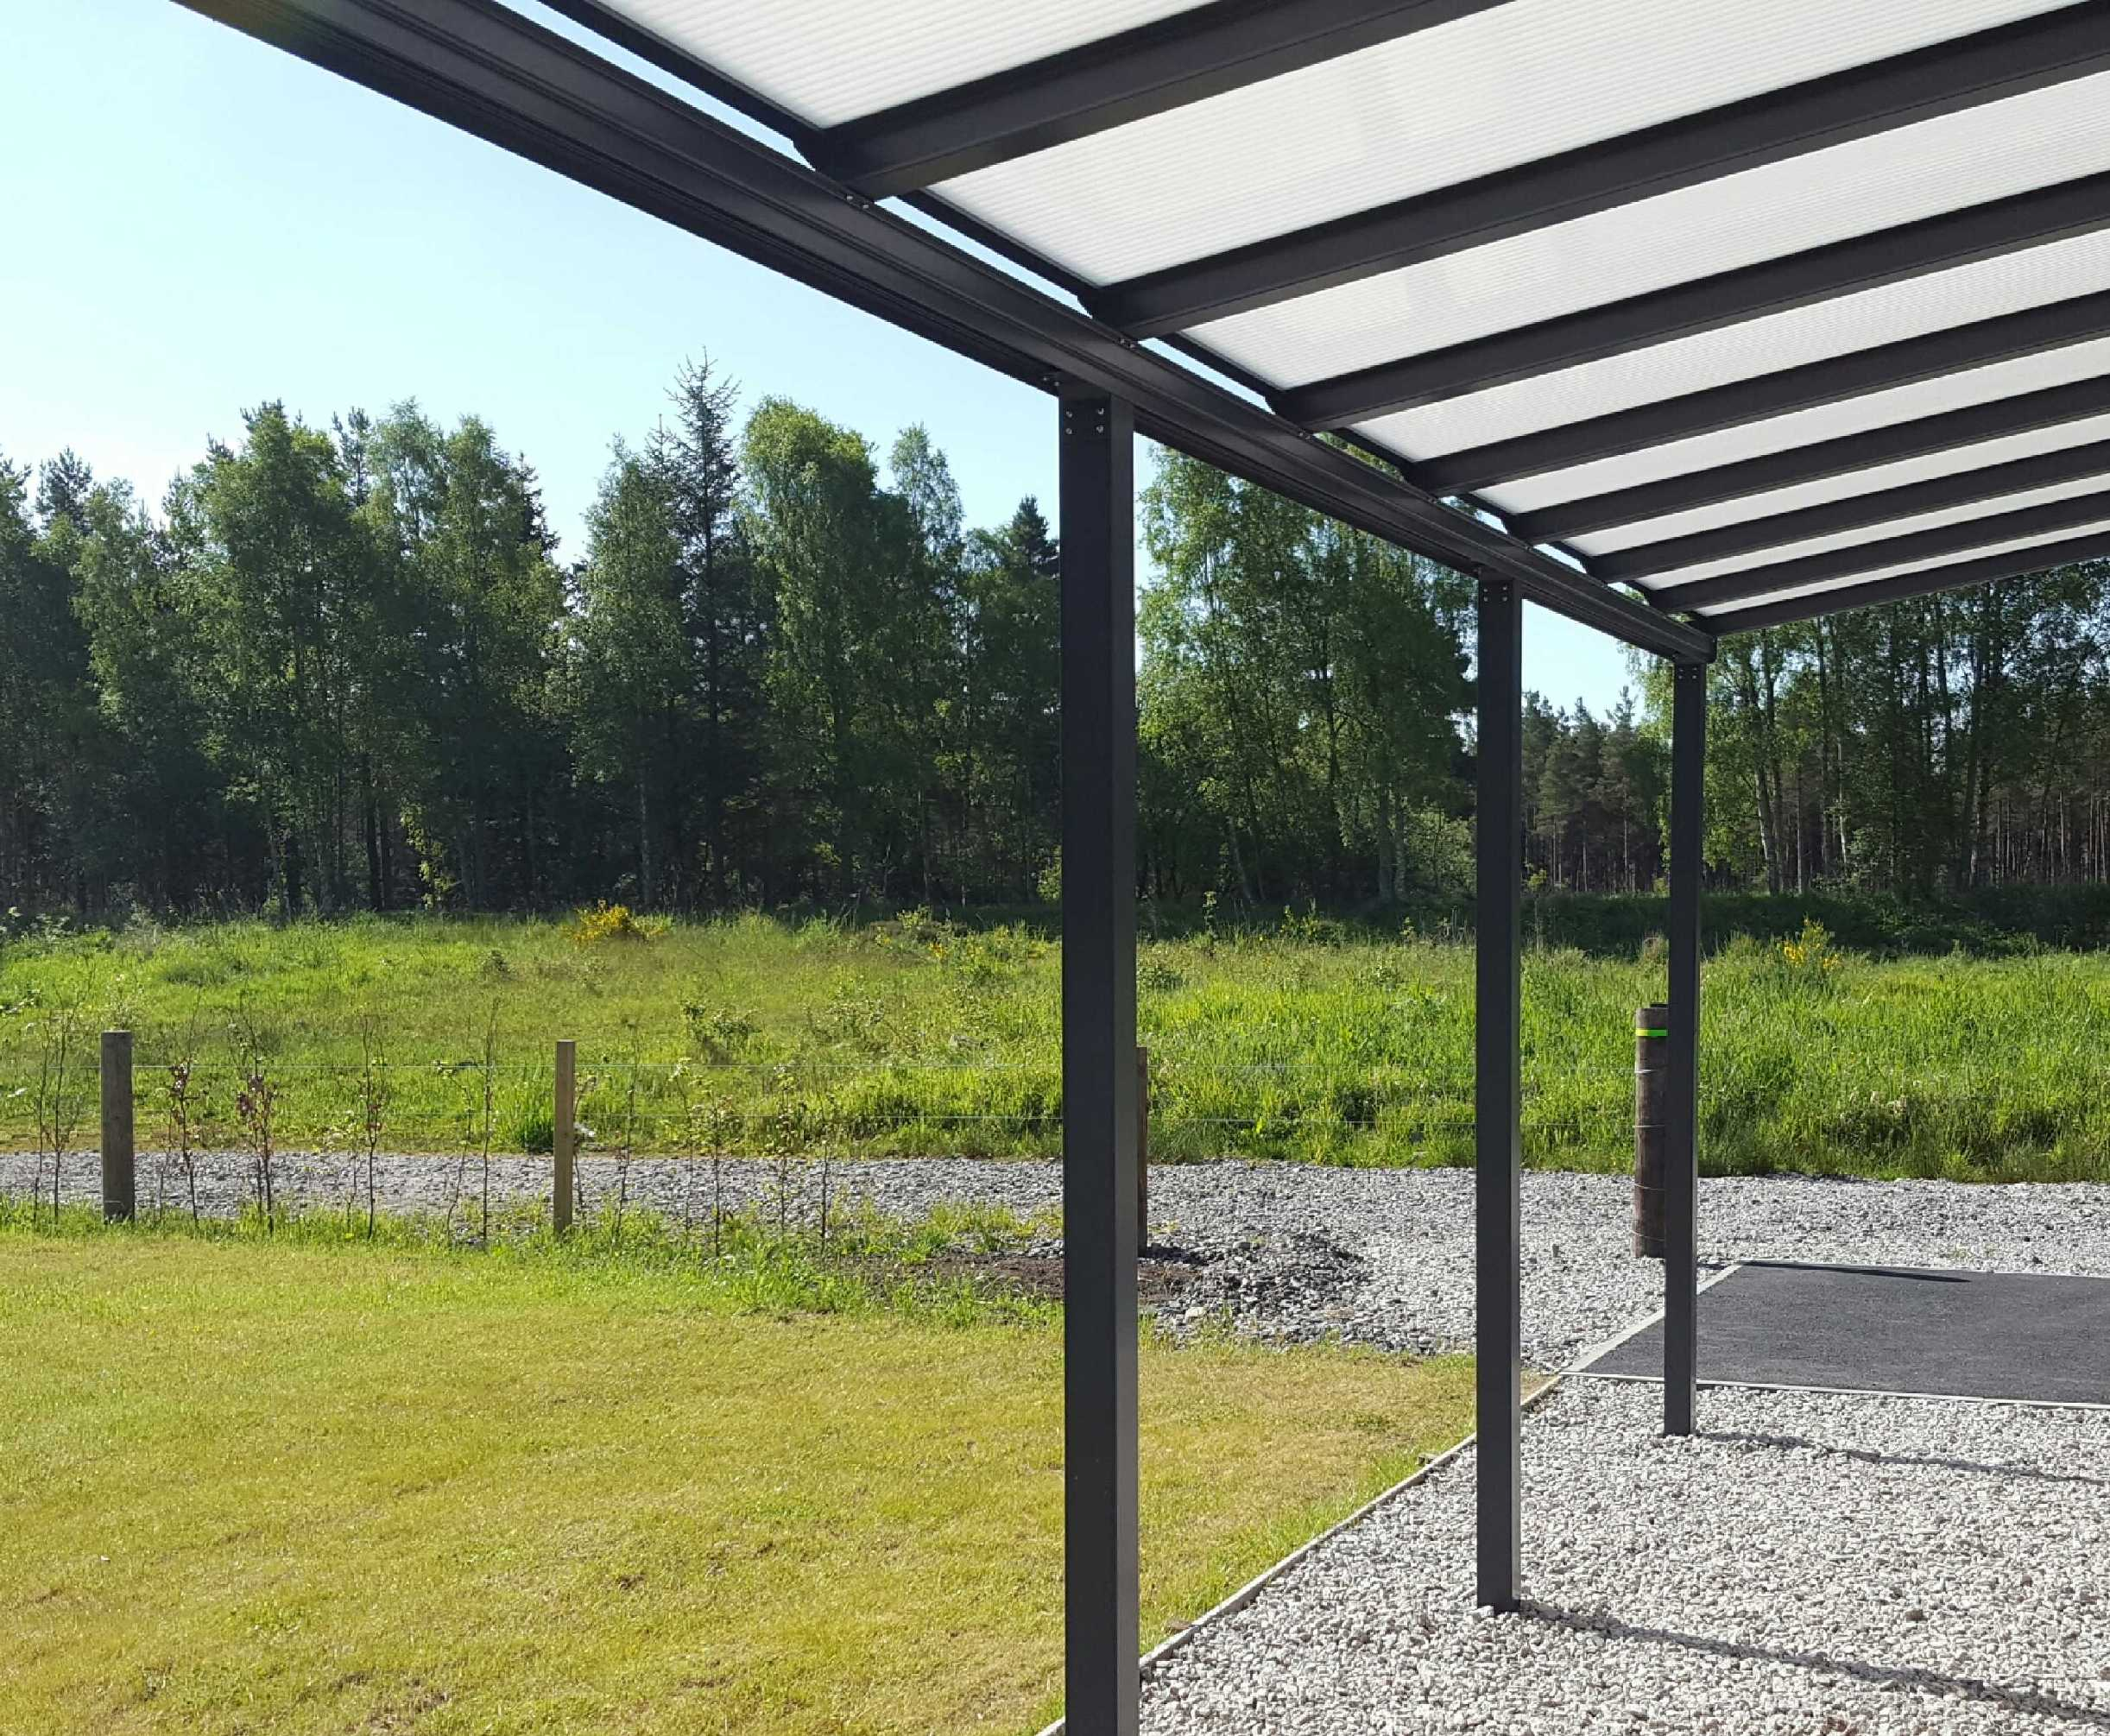 Omega Smart Lean-To Canopy, Anthracite Grey, 16mm Polycarbonate Glazing - 11.6m (W) x 1.5m (P), (5) Supporting Posts